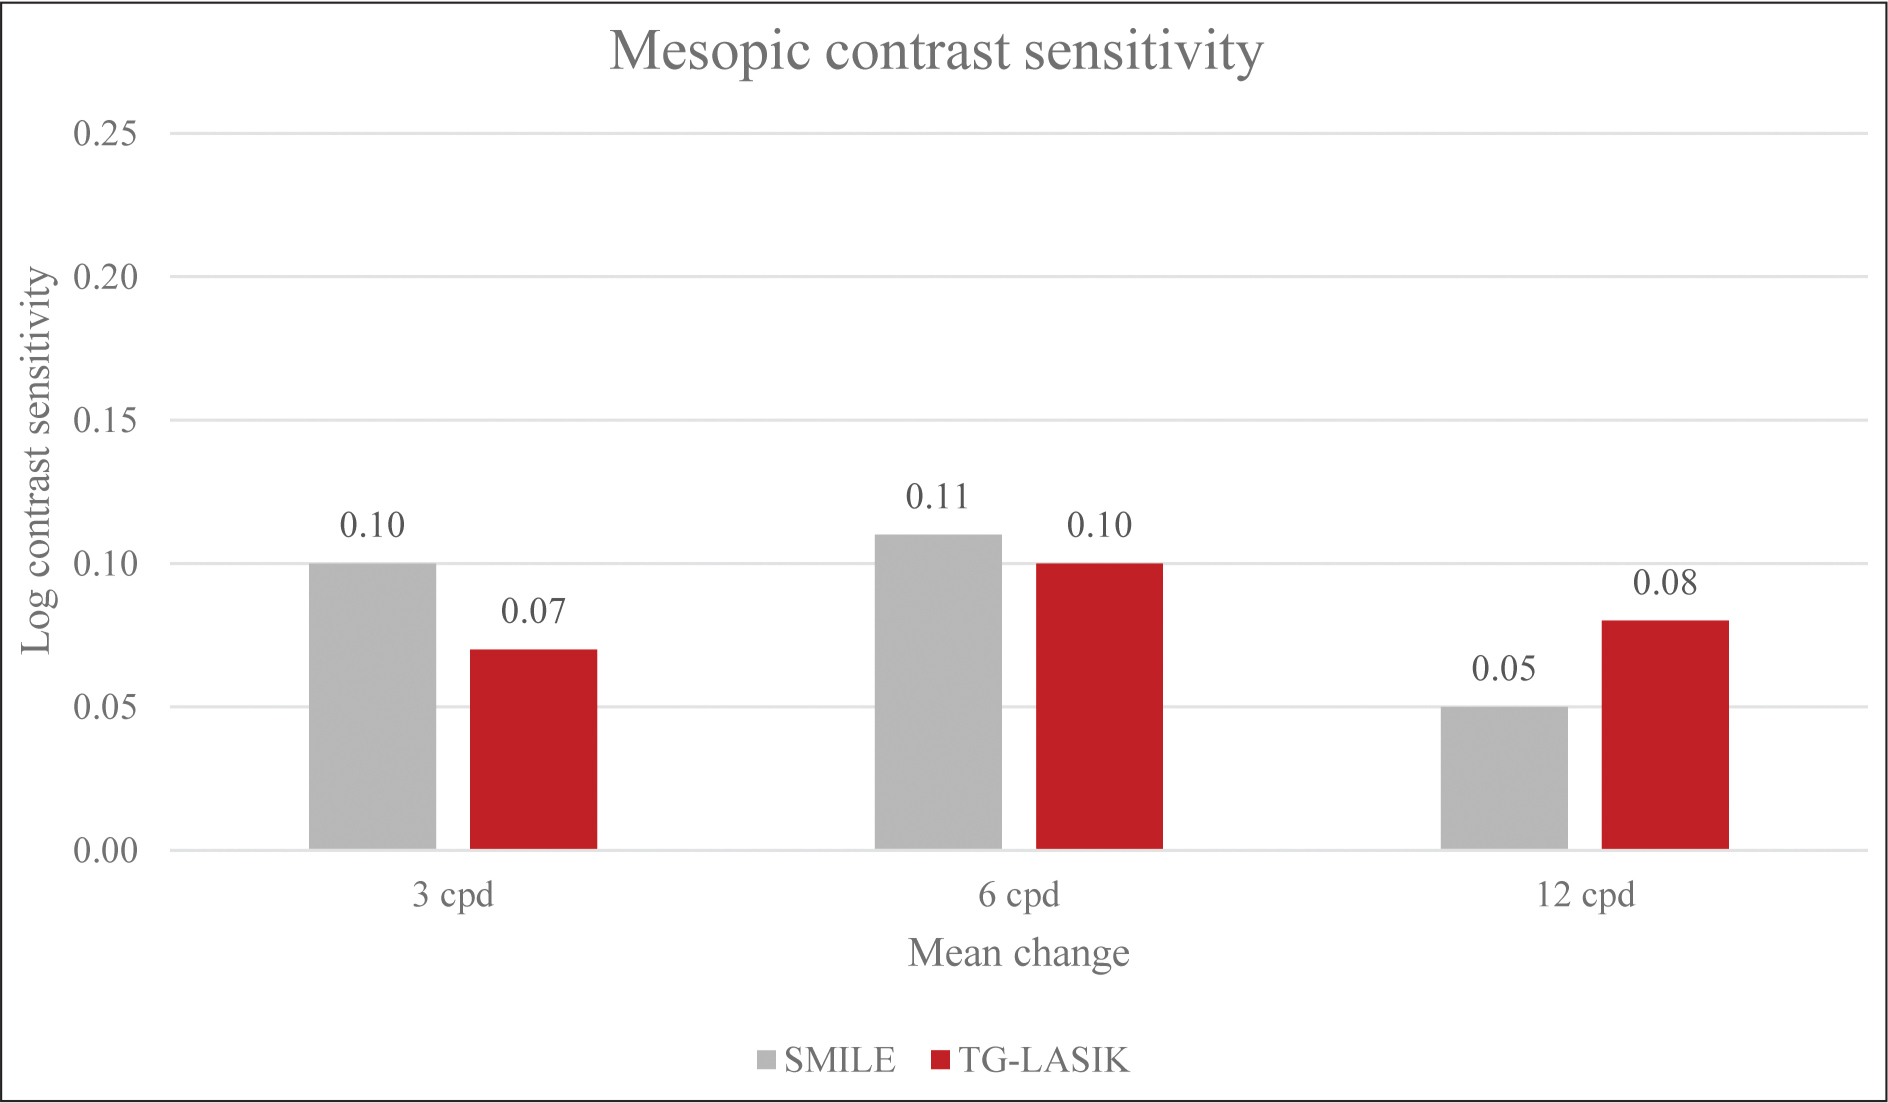 Mesopic contrast sensitivity values for 3, 6, and 12 cycles per degree (cpd) at the 6-month time point. SMILE = small incision lenticule extraction; TG-LASIK = topography-guided laser in situ keratomileusis